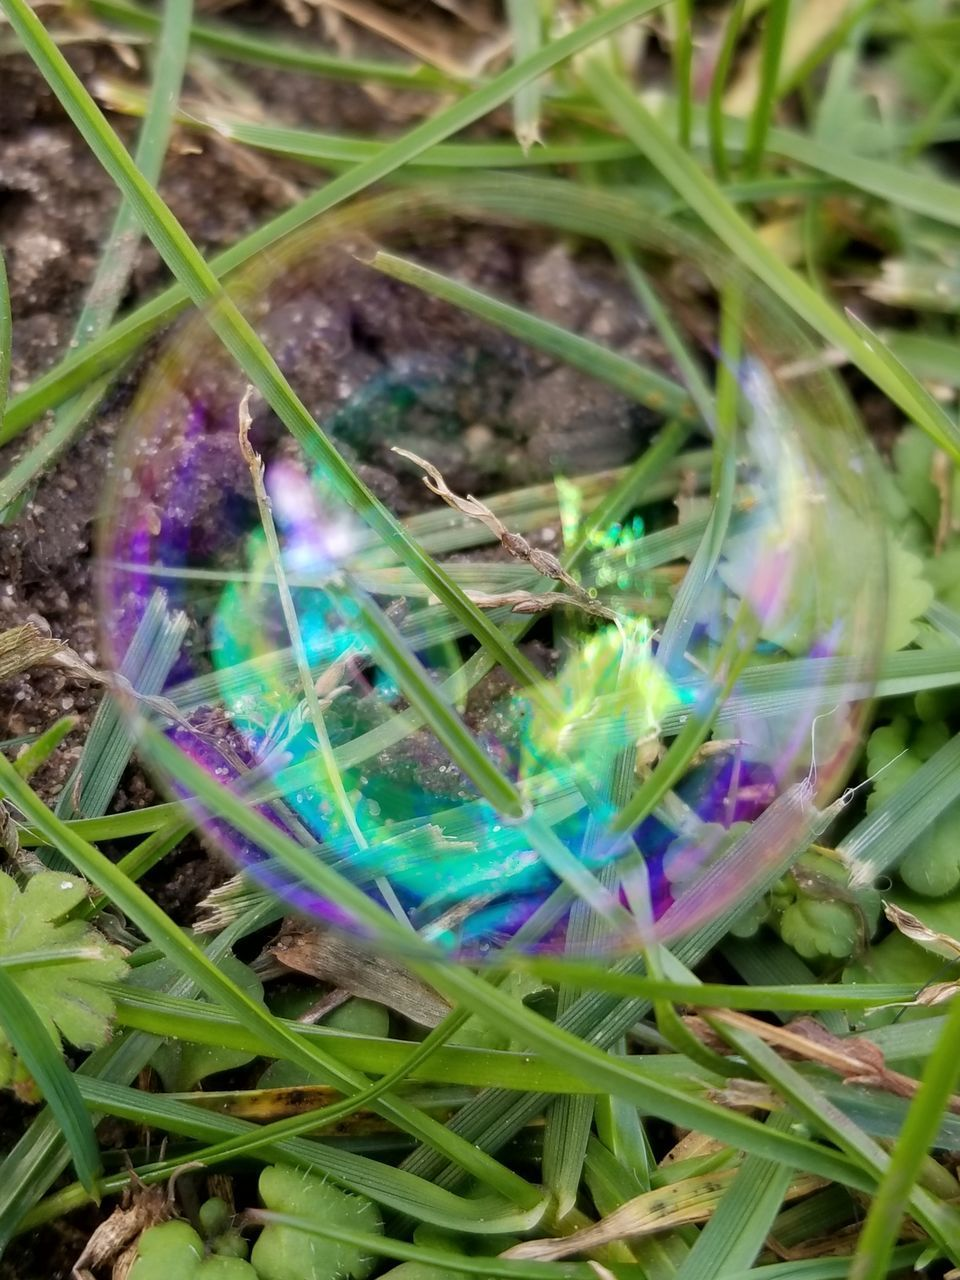 multi colored, vulnerability, fragility, close-up, no people, bubble, plant, nature, day, green color, purple, high angle view, transparent, outdoors, sphere, selective focus, soap sud, shiny, grass, blue, lightweight